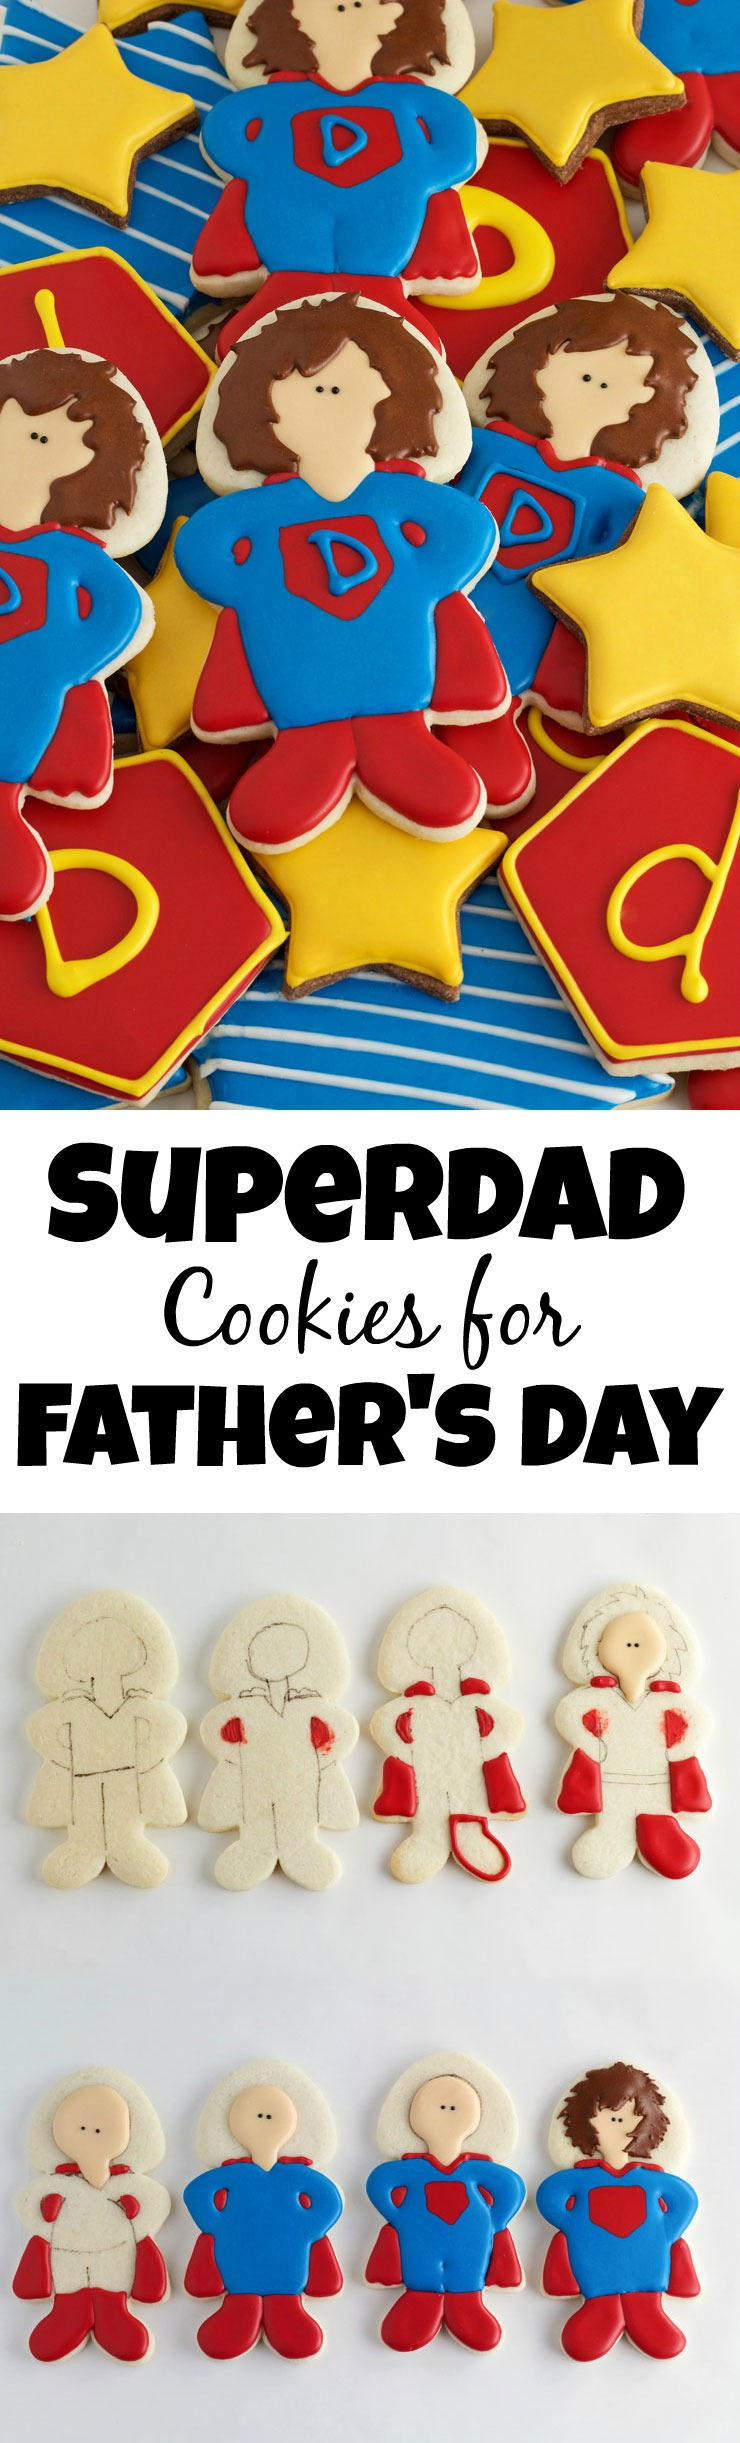 How to Make Superdad Hero Cookies for Father's Day with www.thebearfootbaker.com